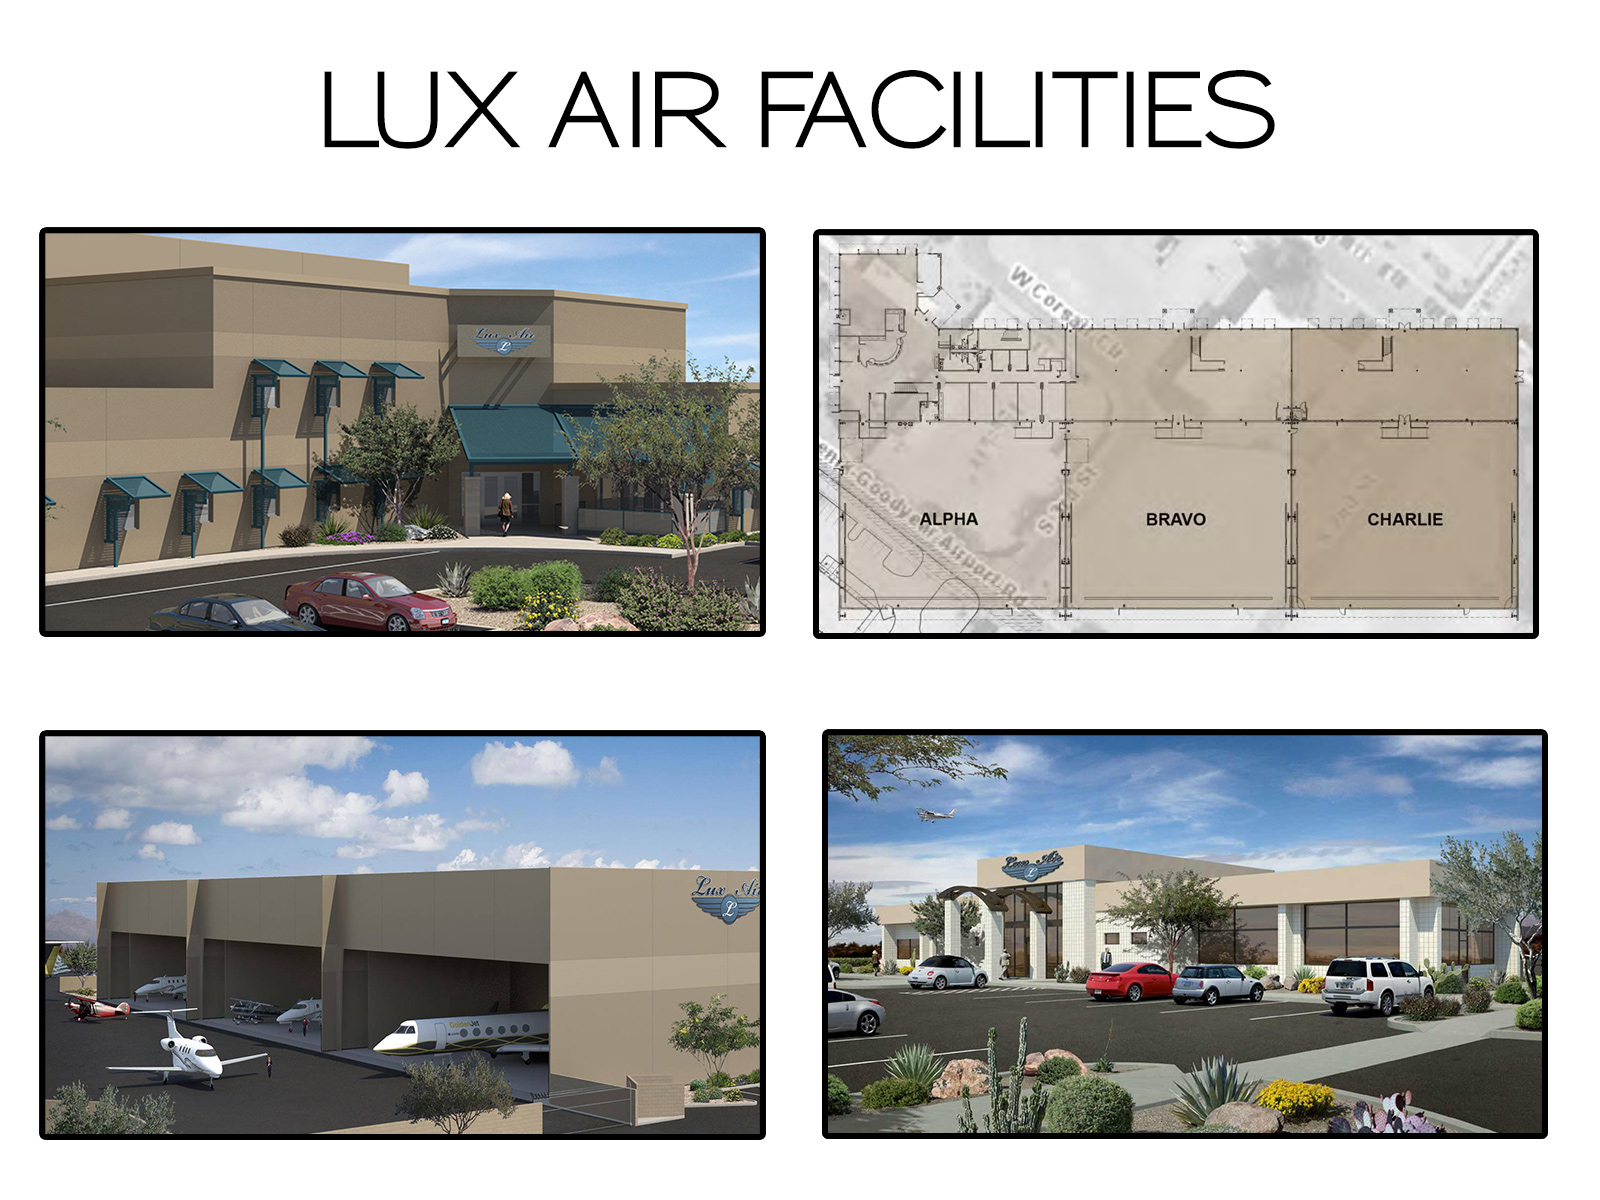 Image of Lux Air Facilities